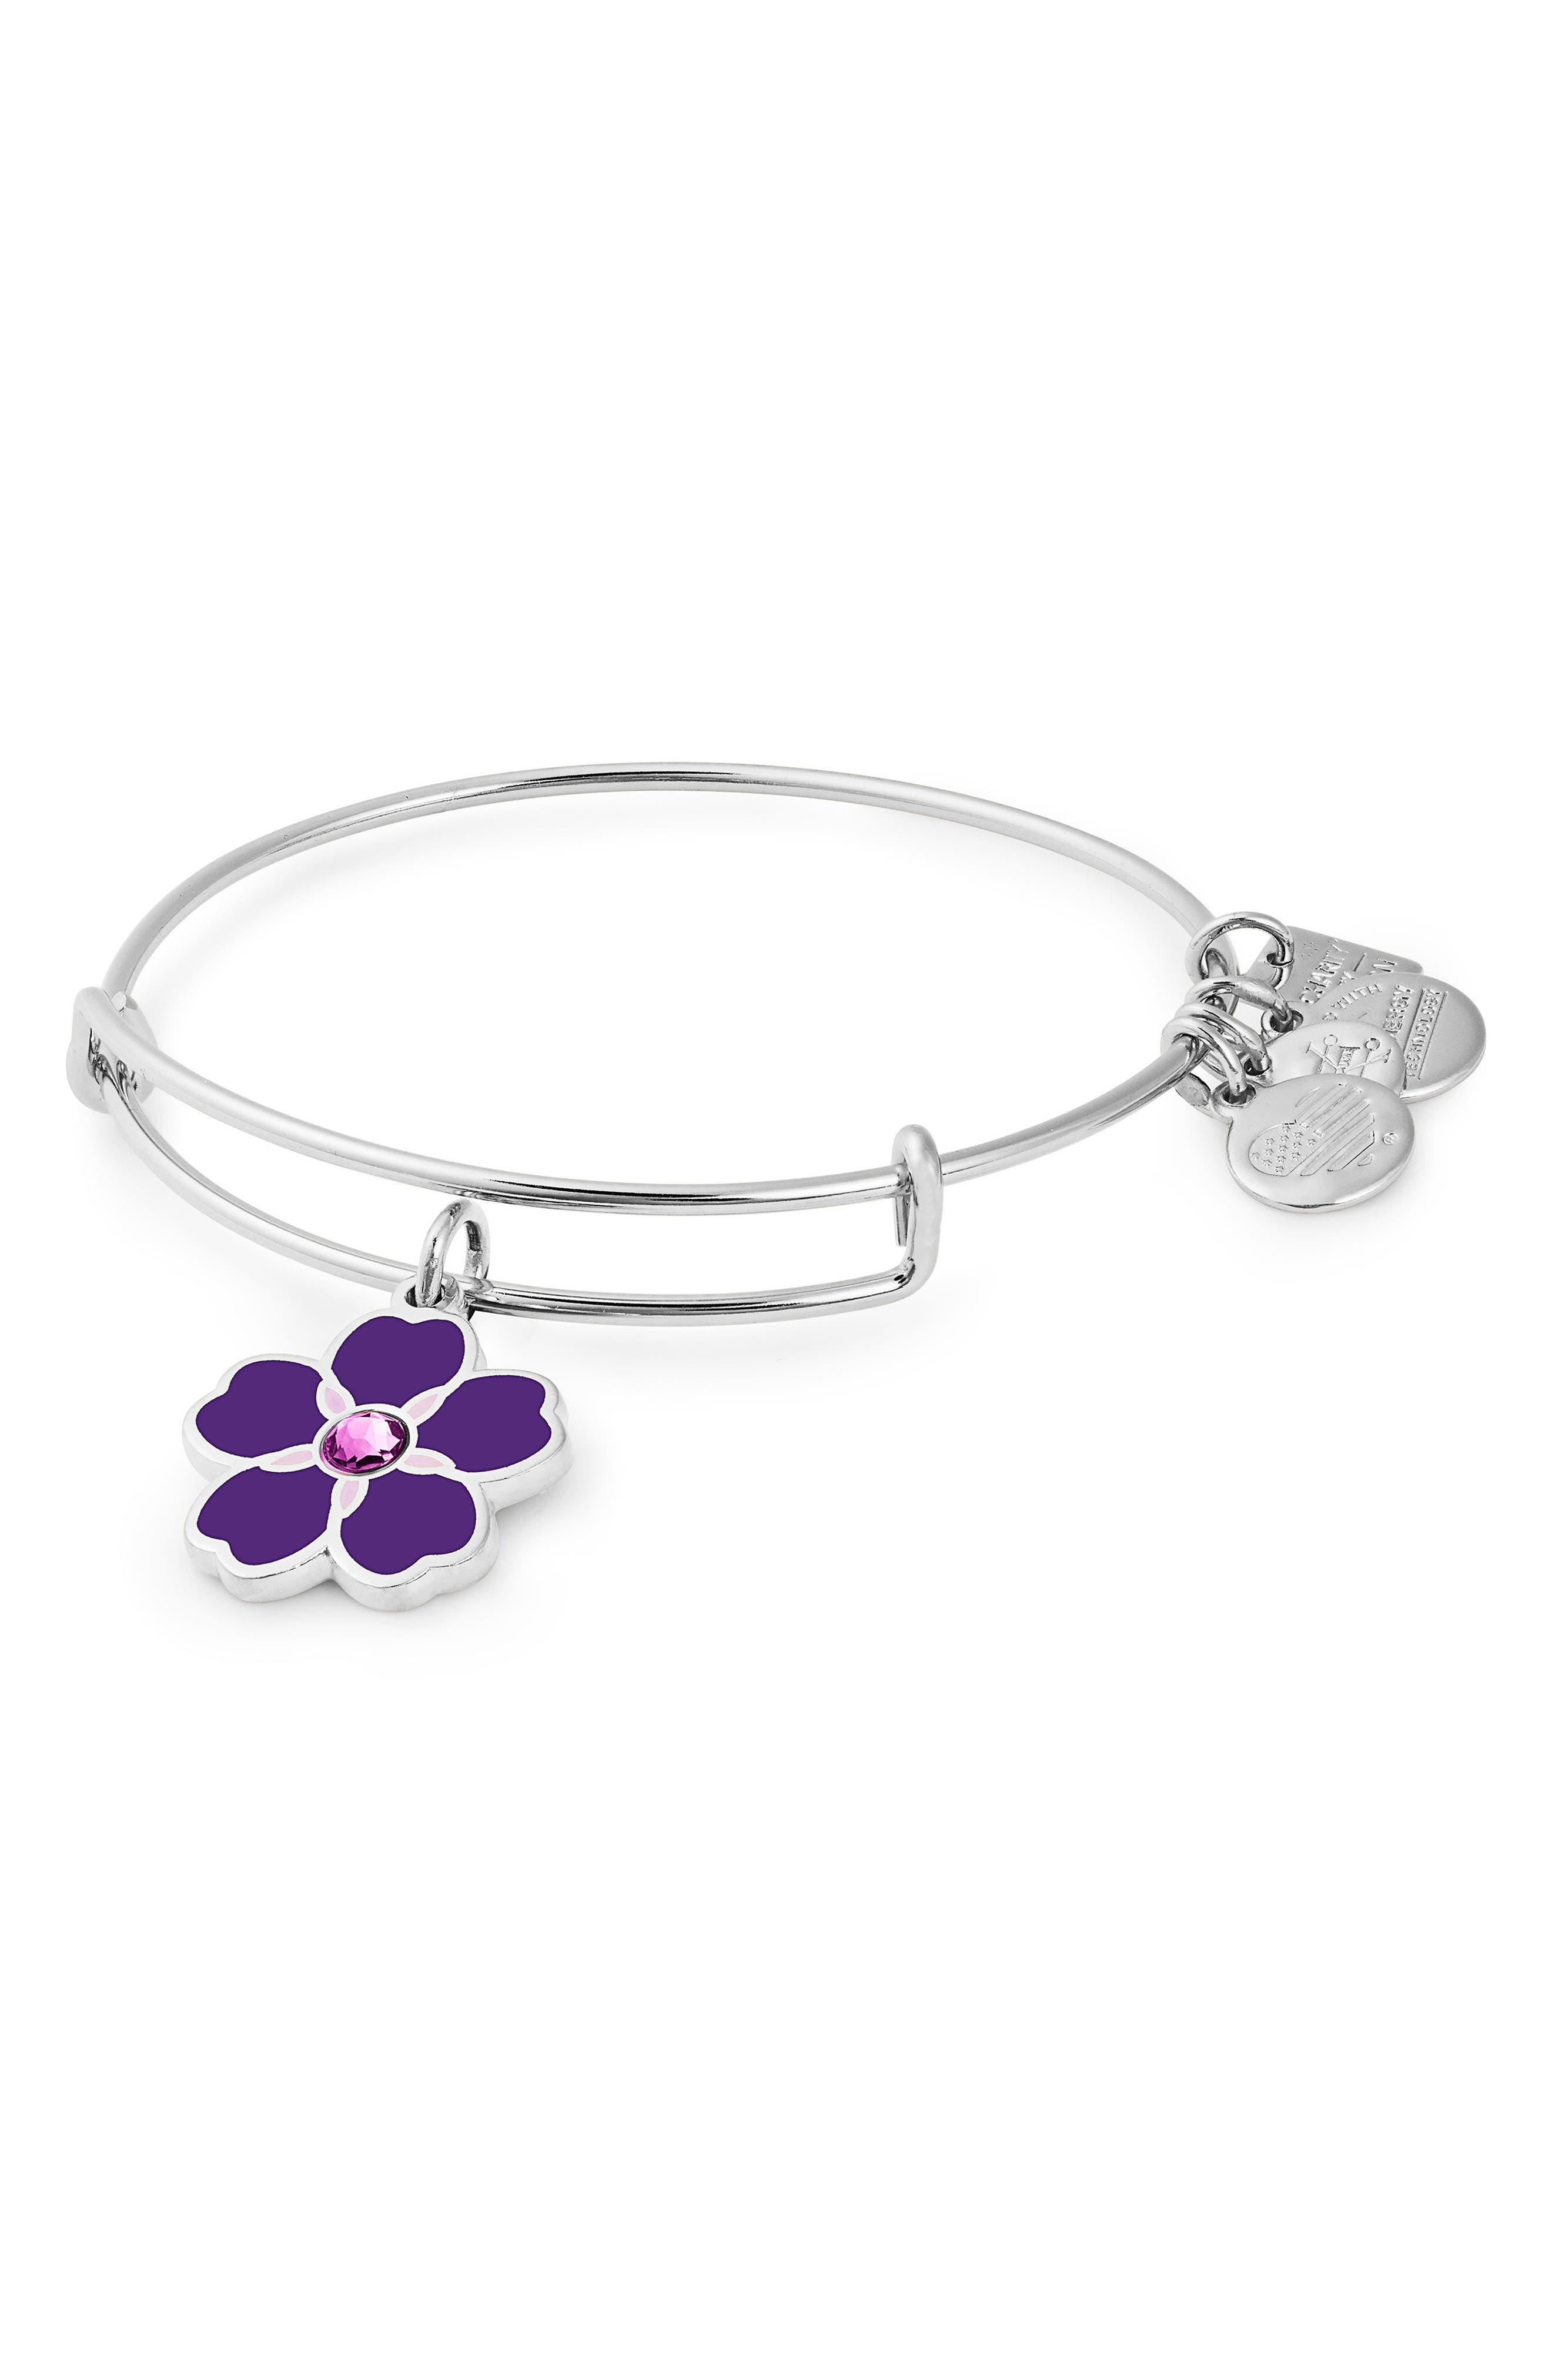 Charity by Design Forget Me Not Charm Bracelet,                         Main,                         color, SILVER